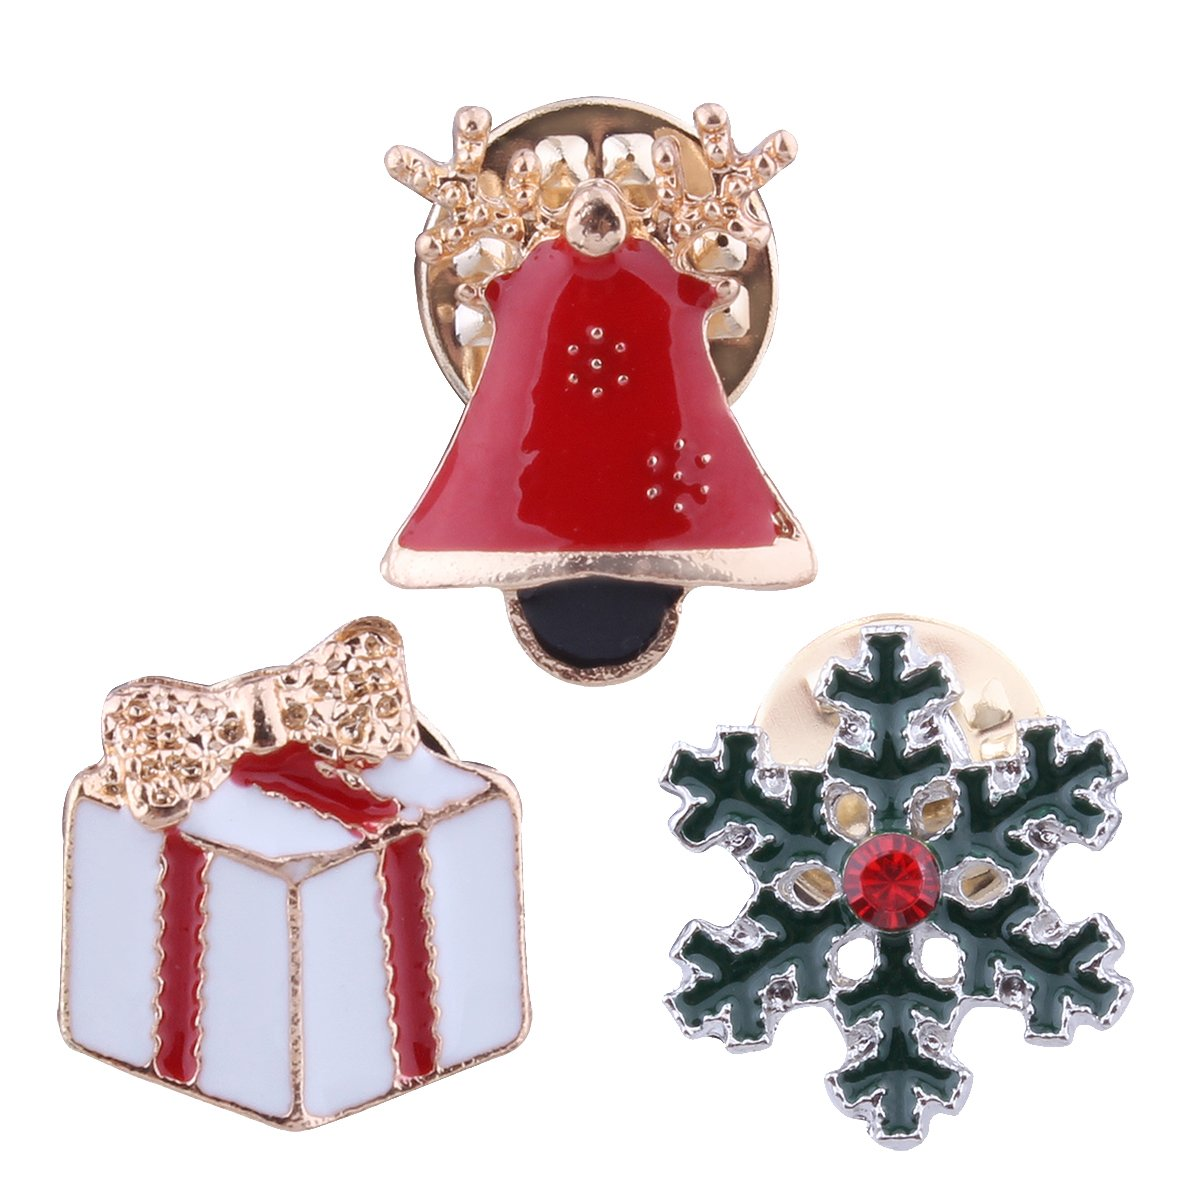 Solememo Christmas Brooch Gift Boxes Bells) Yiwu Yulin SDXZ